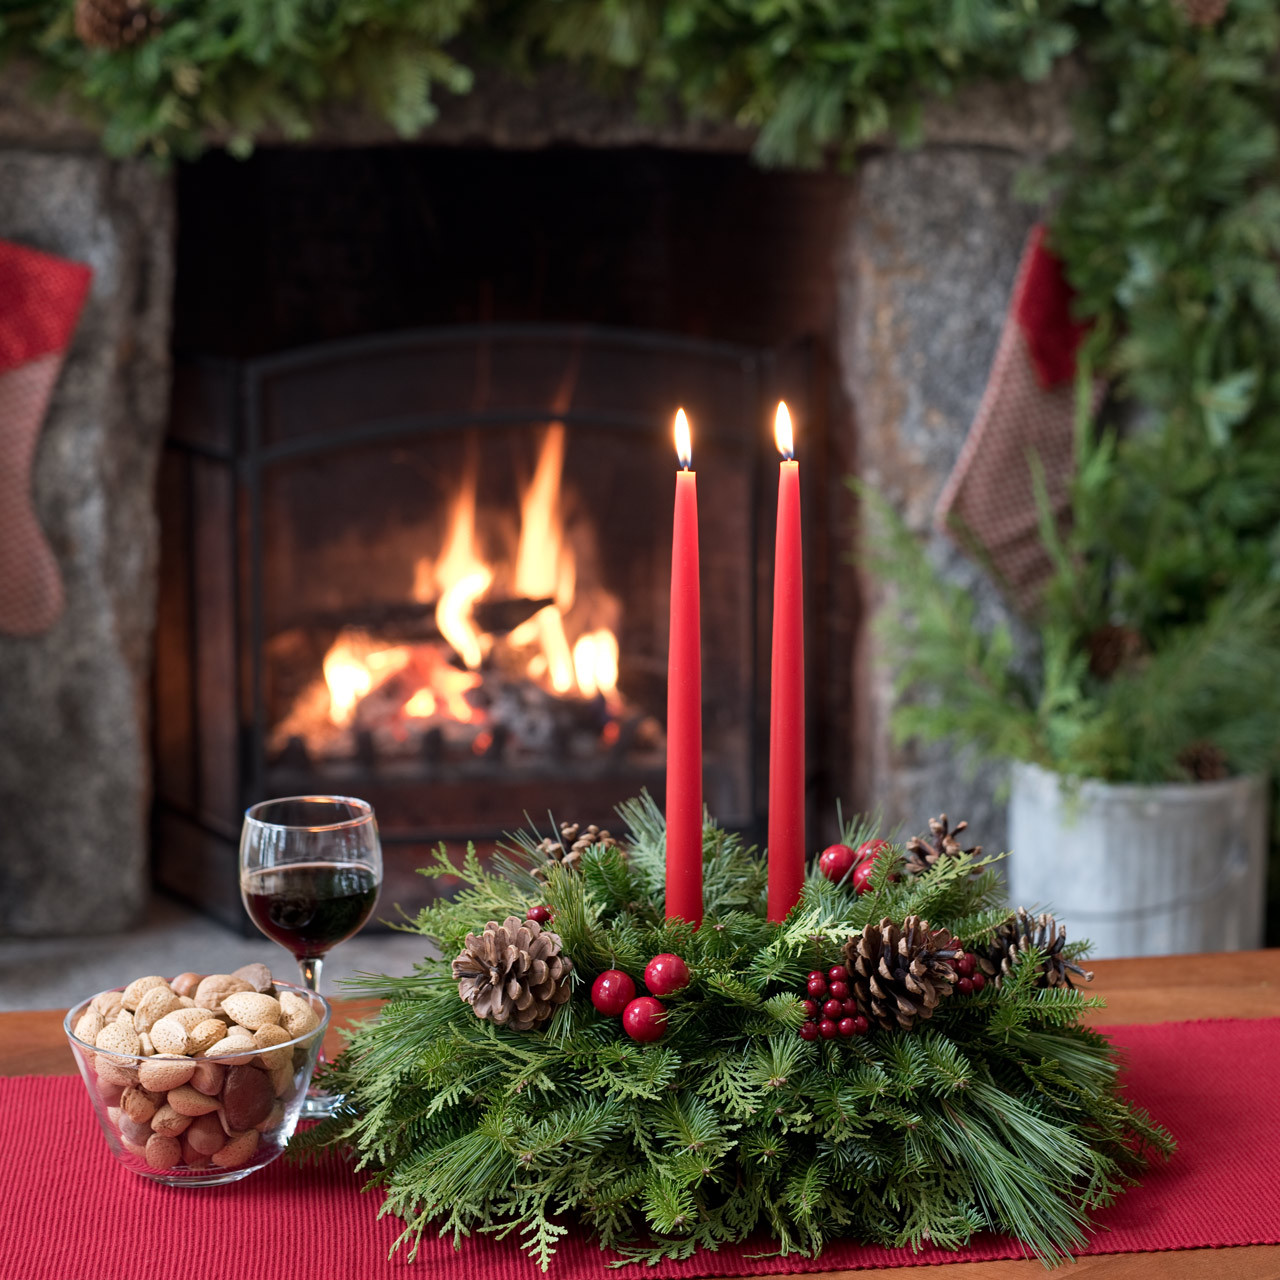 Exceptional New England Maine Christmas Centerpiece With Pine Cones, Faux Berries And  Cherries, And Holly Part 24